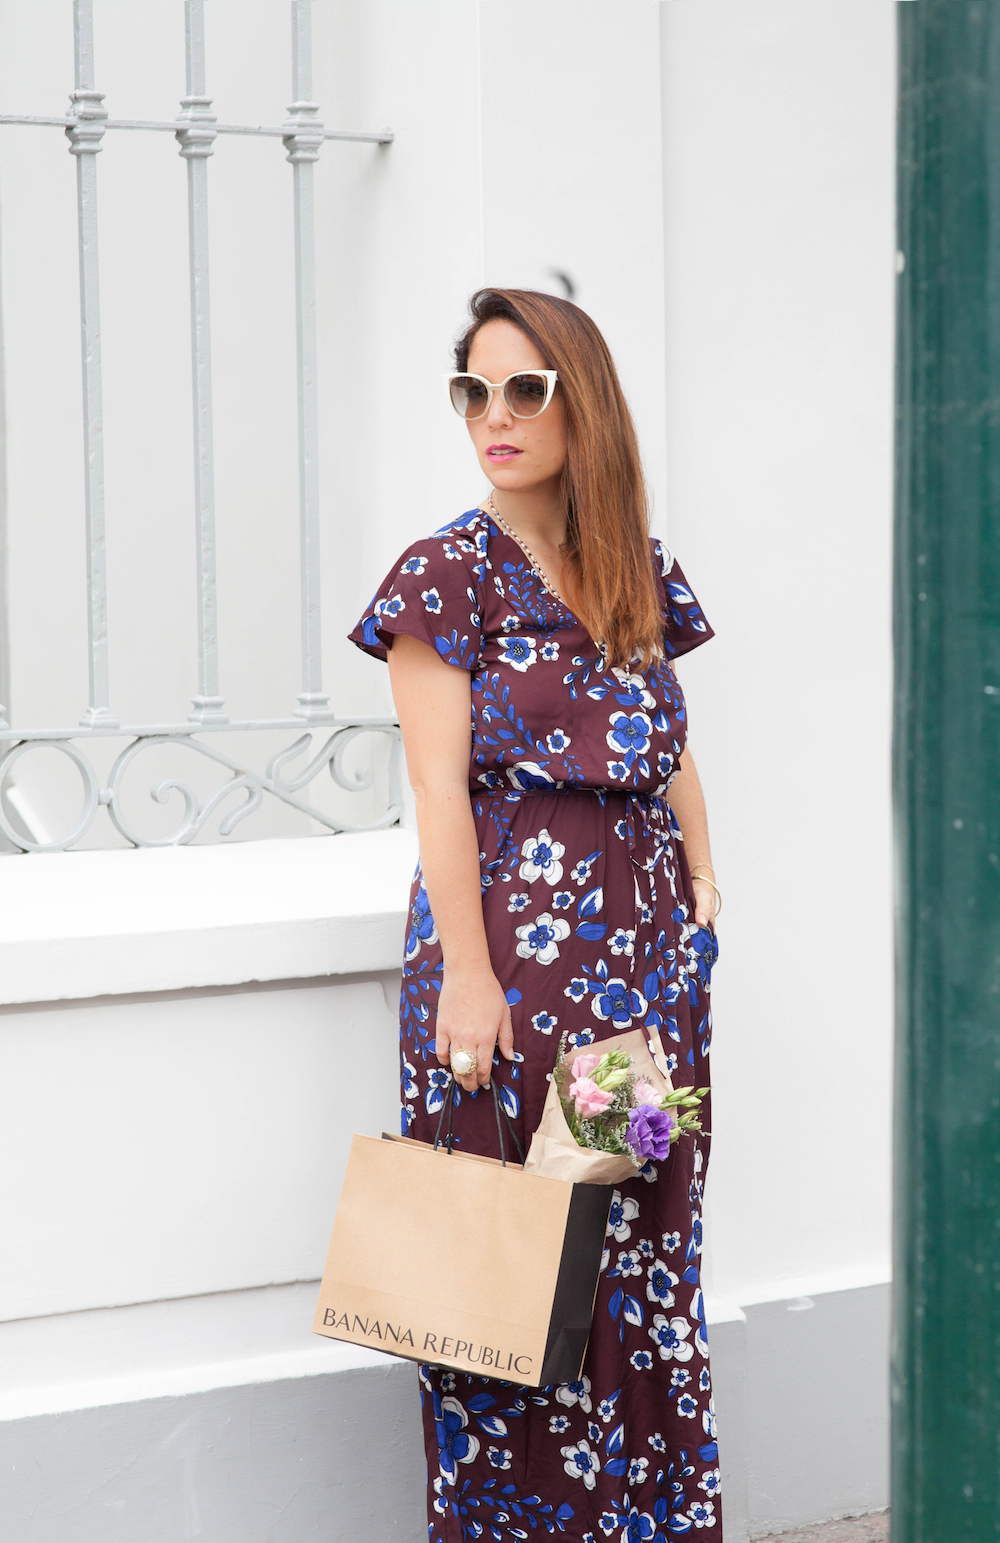 La vida de Serendipity - Banana Republic Maxi Floral Dress - Fendi Sunglasses -  4